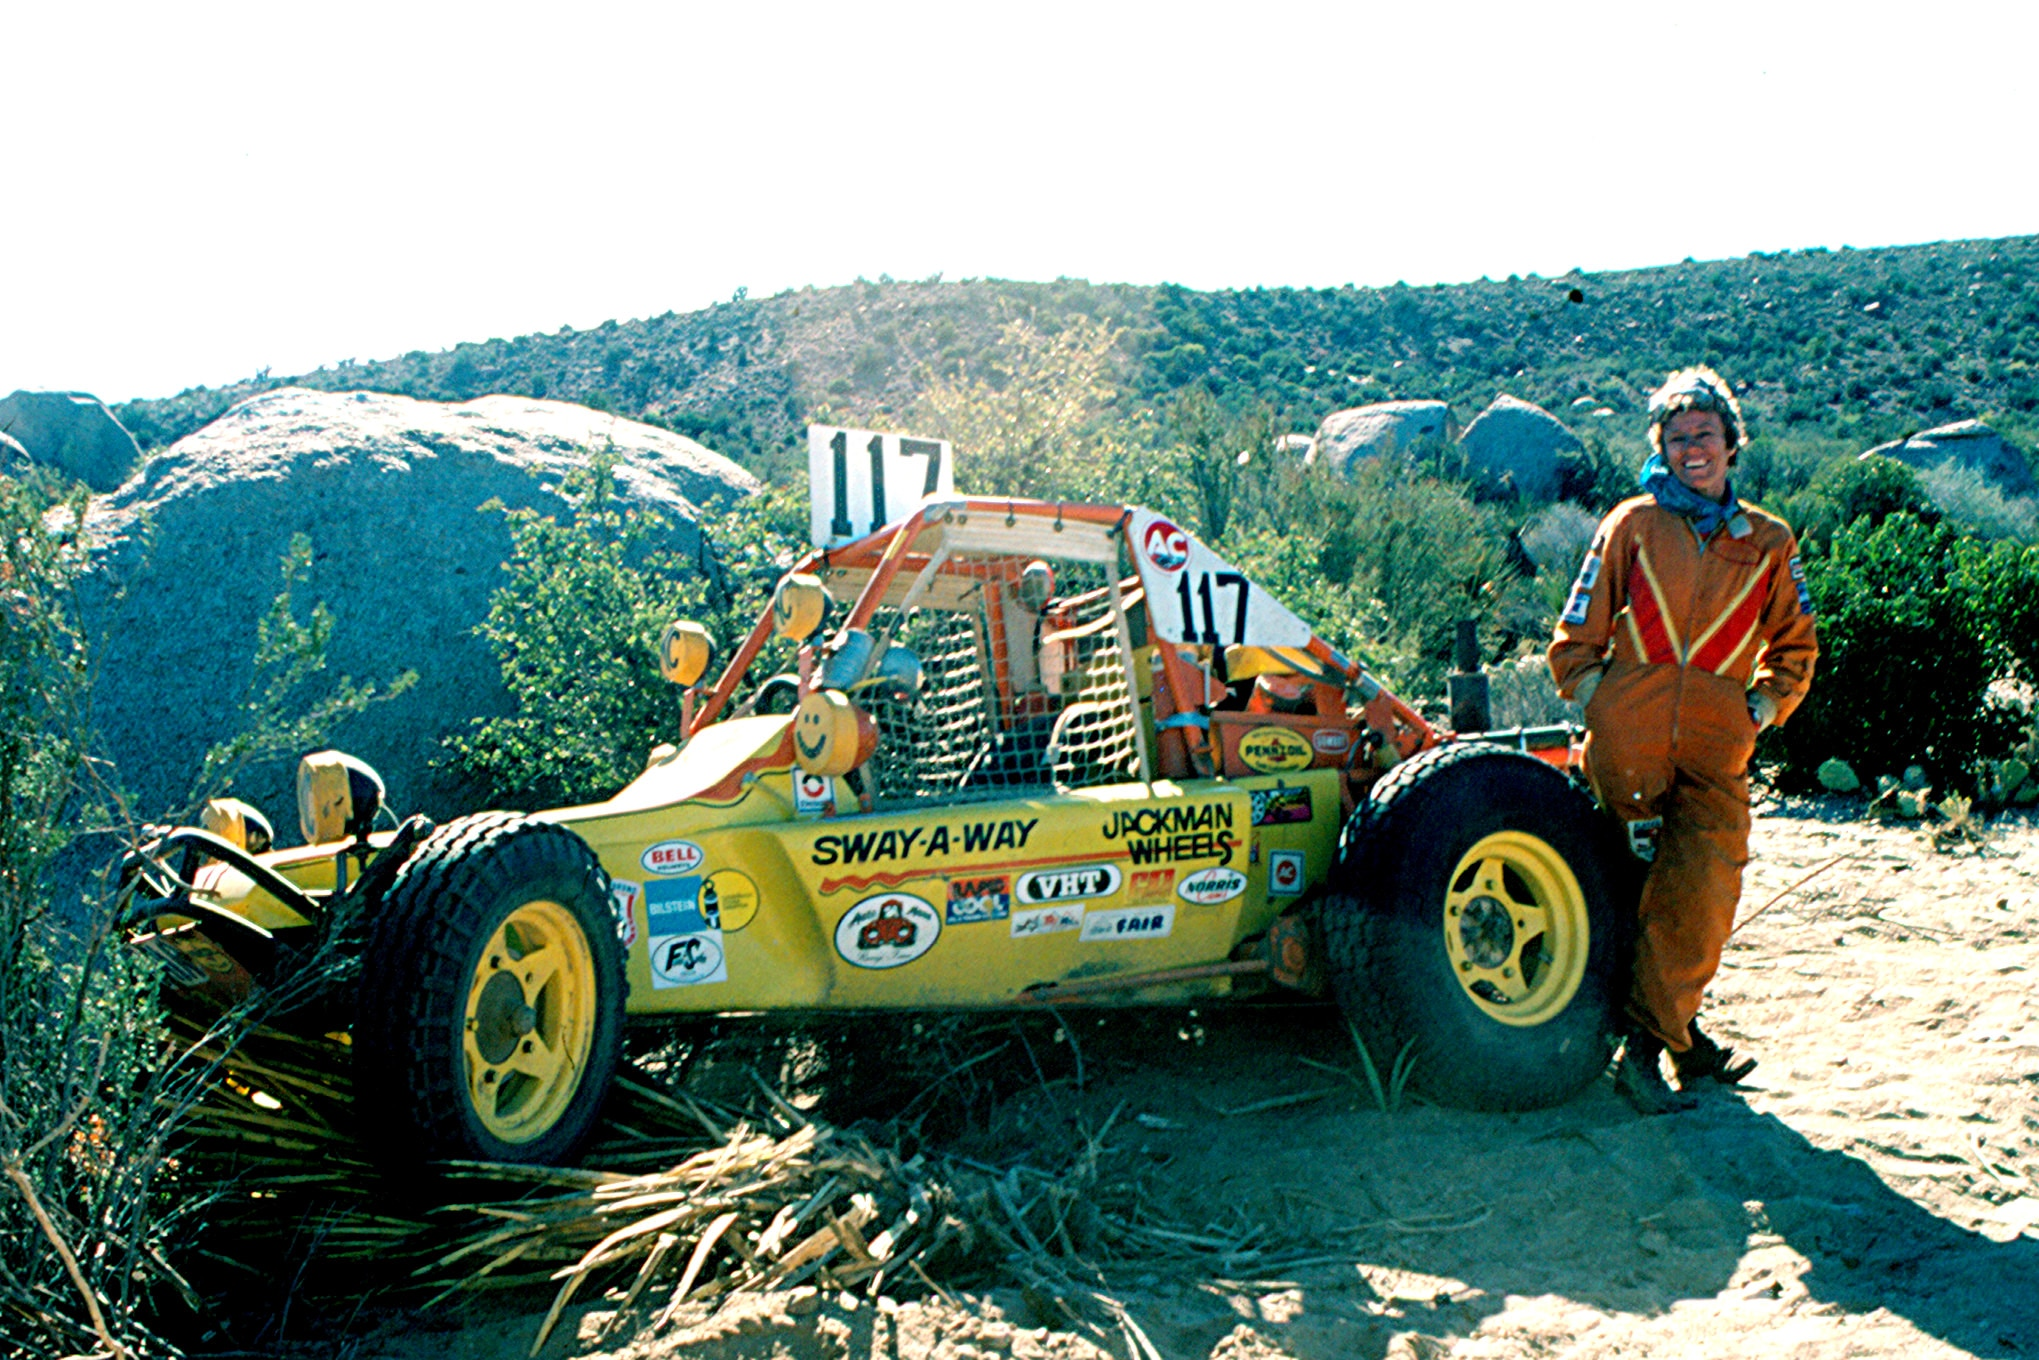 Judy Smith still had a smile on her face even after she DNF'd the 1973 Baja 1000. She had clipped a tree stump and sheared the bolts off of the right front tire, putting her out of the race. Judy had finished third overall at the previous Baja 1000.